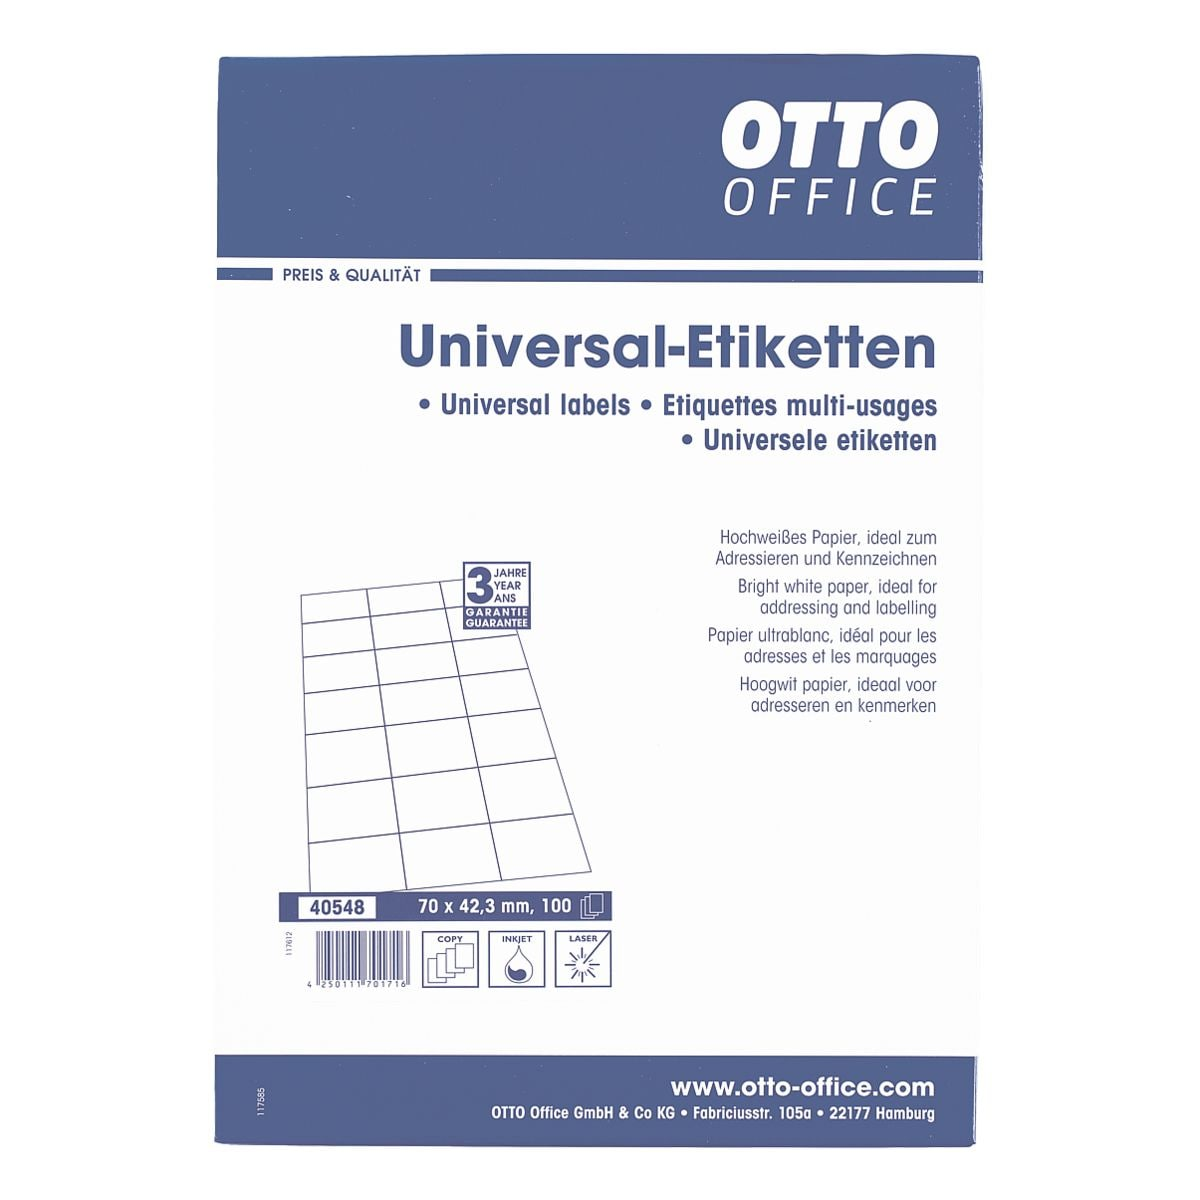 OTTO Office 2100er-Pack Universal Klebeetiketten - Bei OTTO Office ...